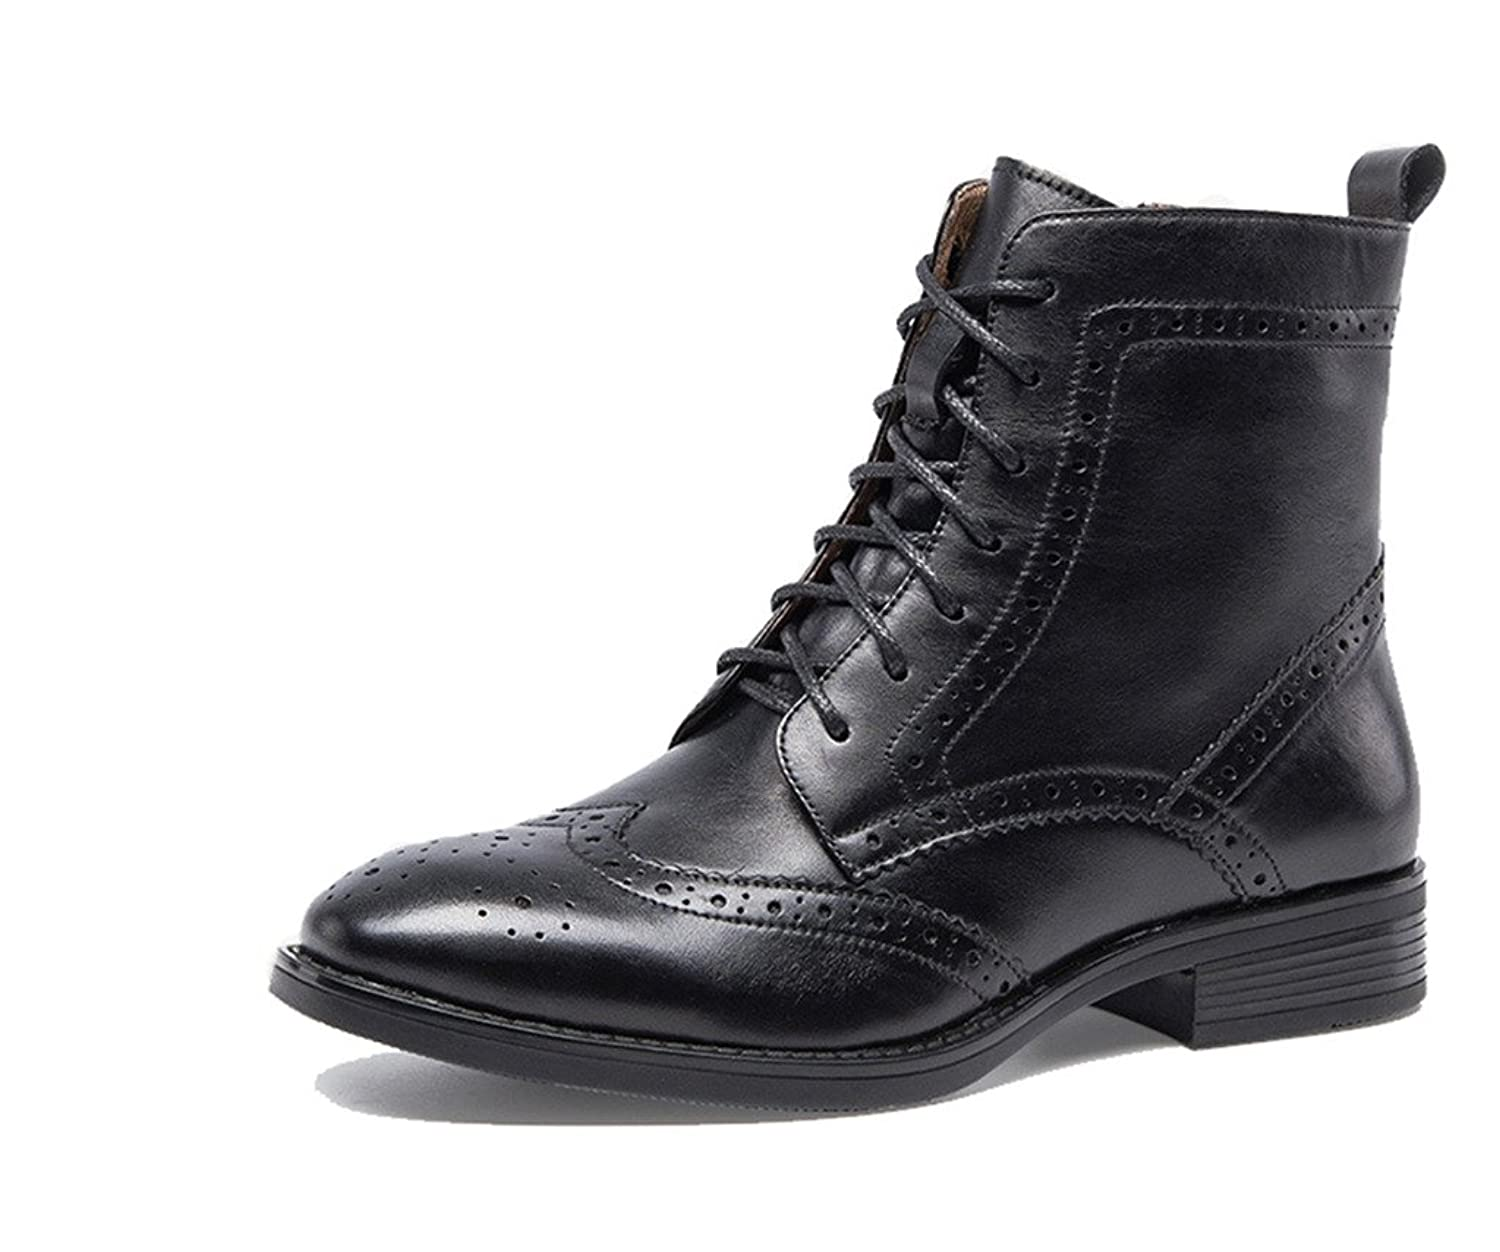 Vintage Boots- Buy Winter Retro Boots U-lite Womens Fall Winter Perforated Wingtip Brogue Leather Oxfords Ankle Boots Women Combat Lace-up Zipper Marten Booties $105.99 AT vintagedancer.com